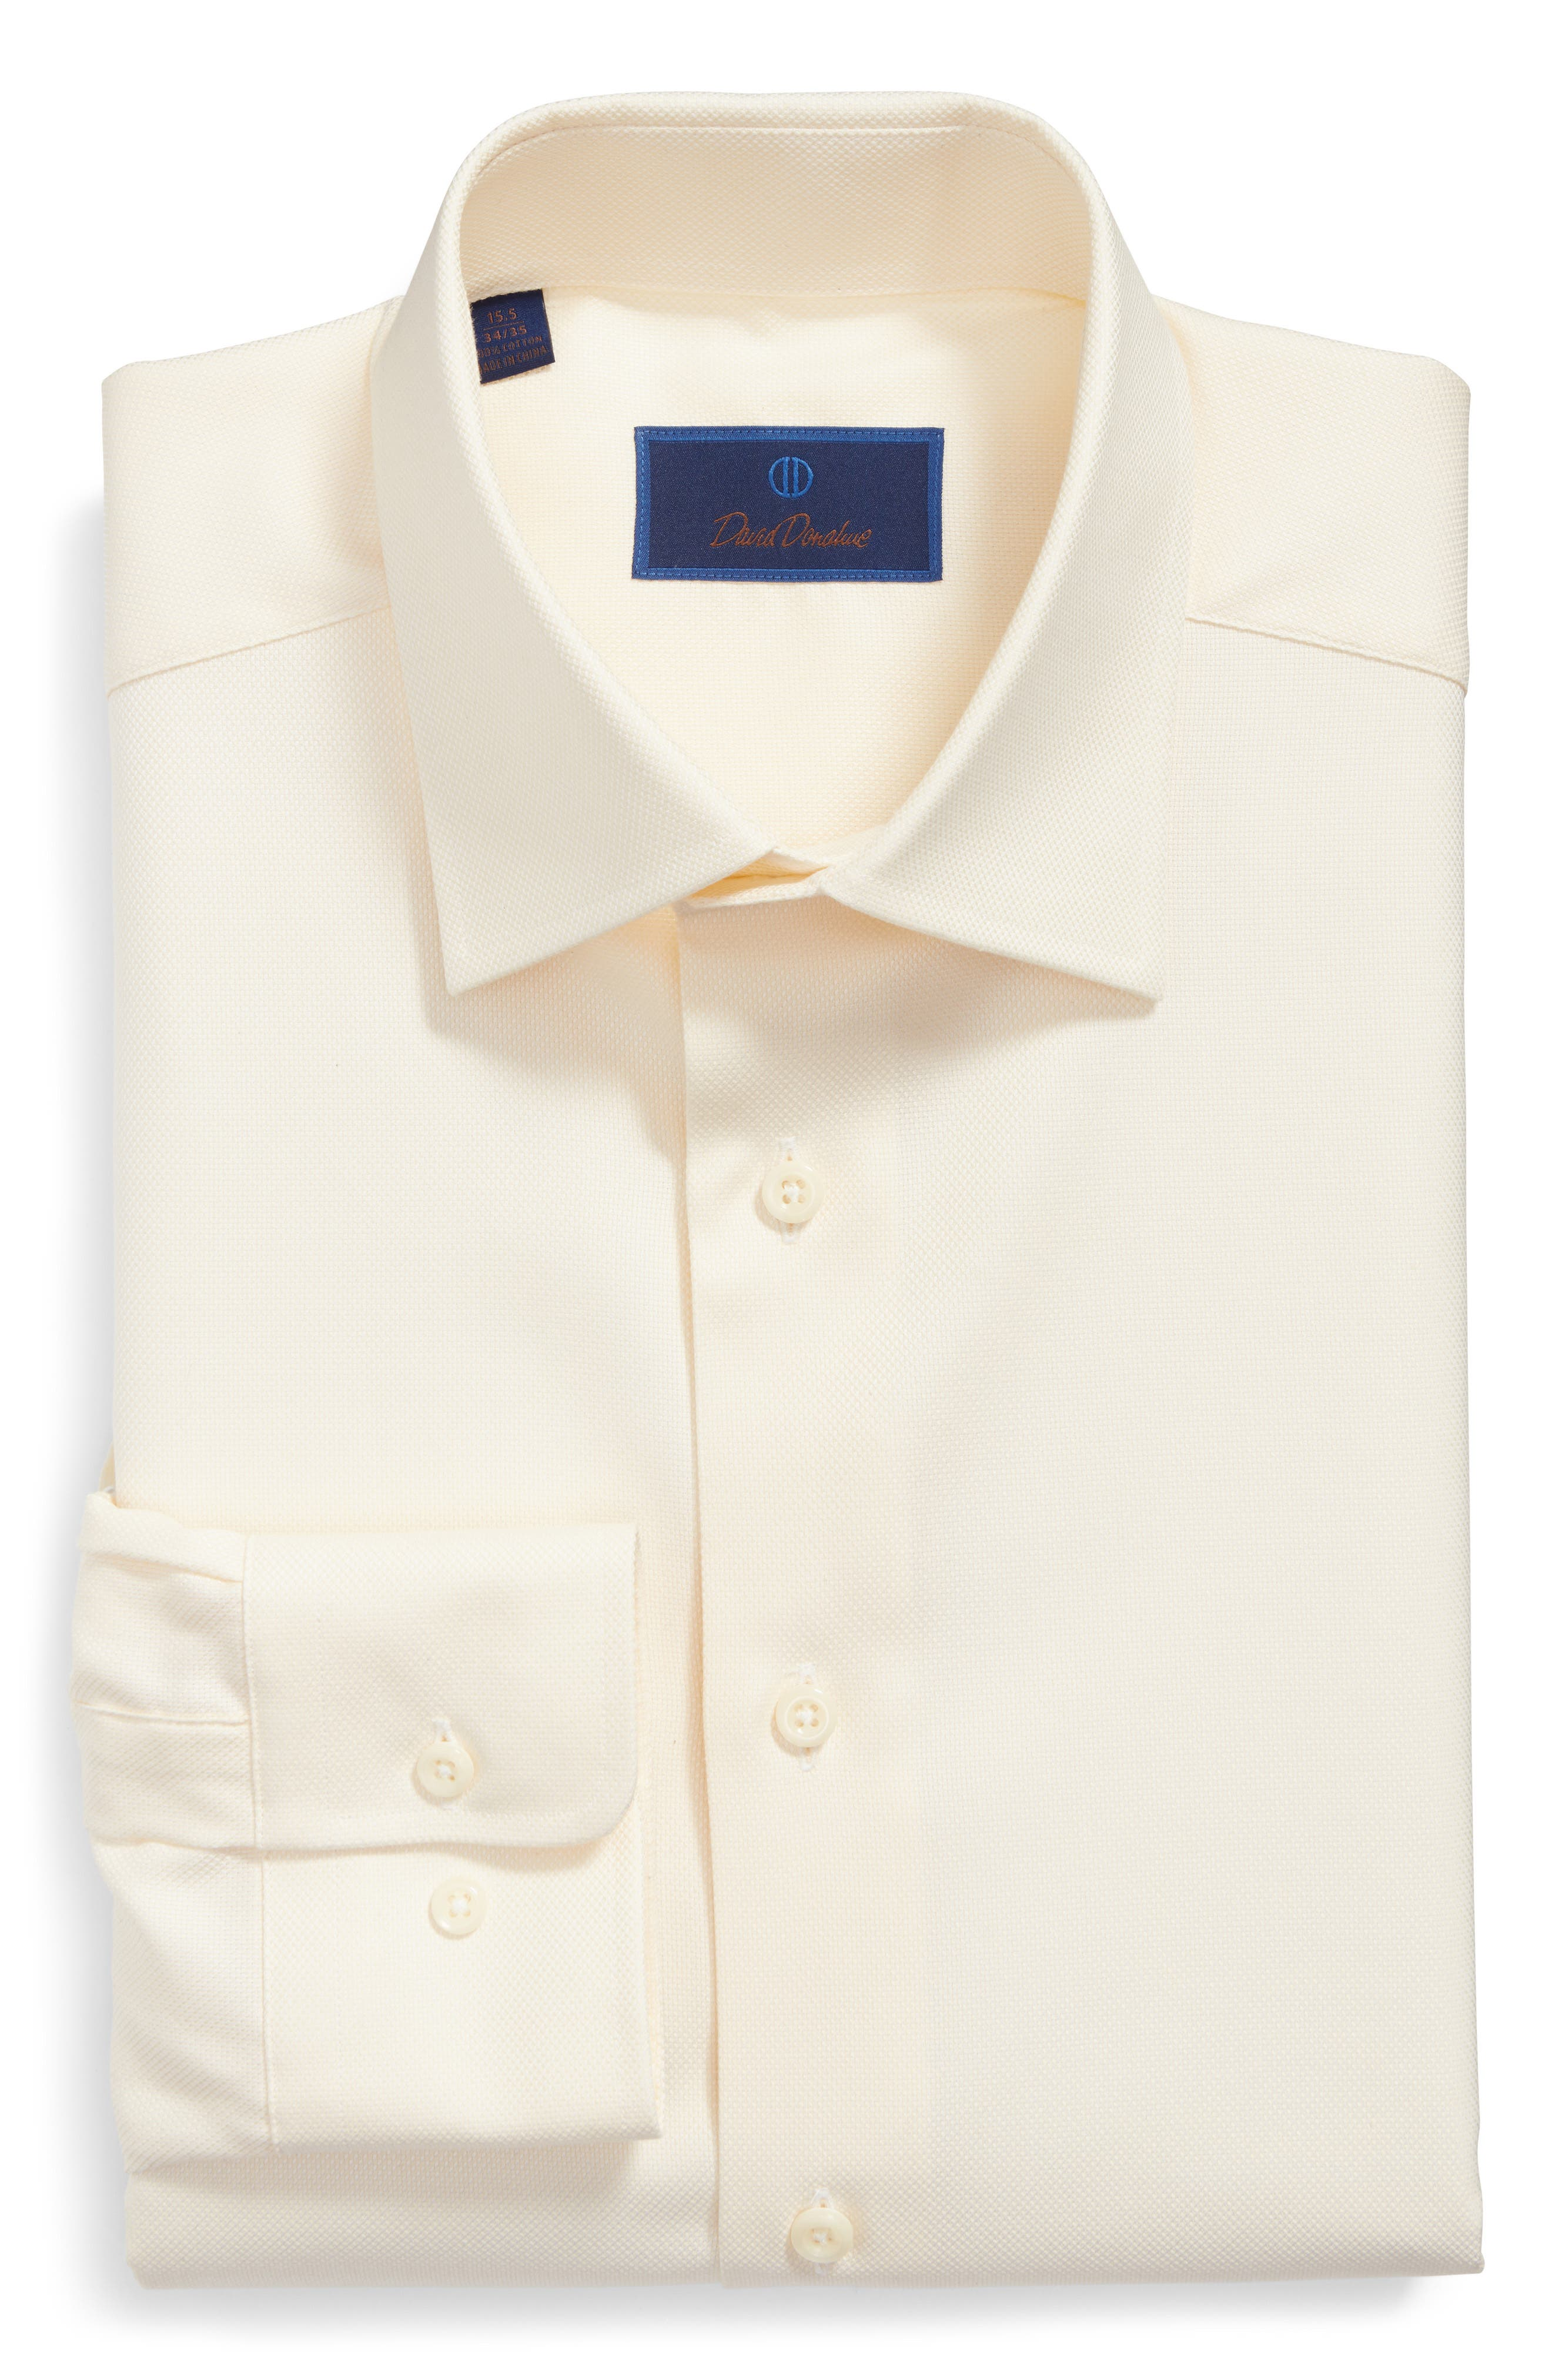 Mens Dress Shirts Bestsellers Clothing Shoes Accessories